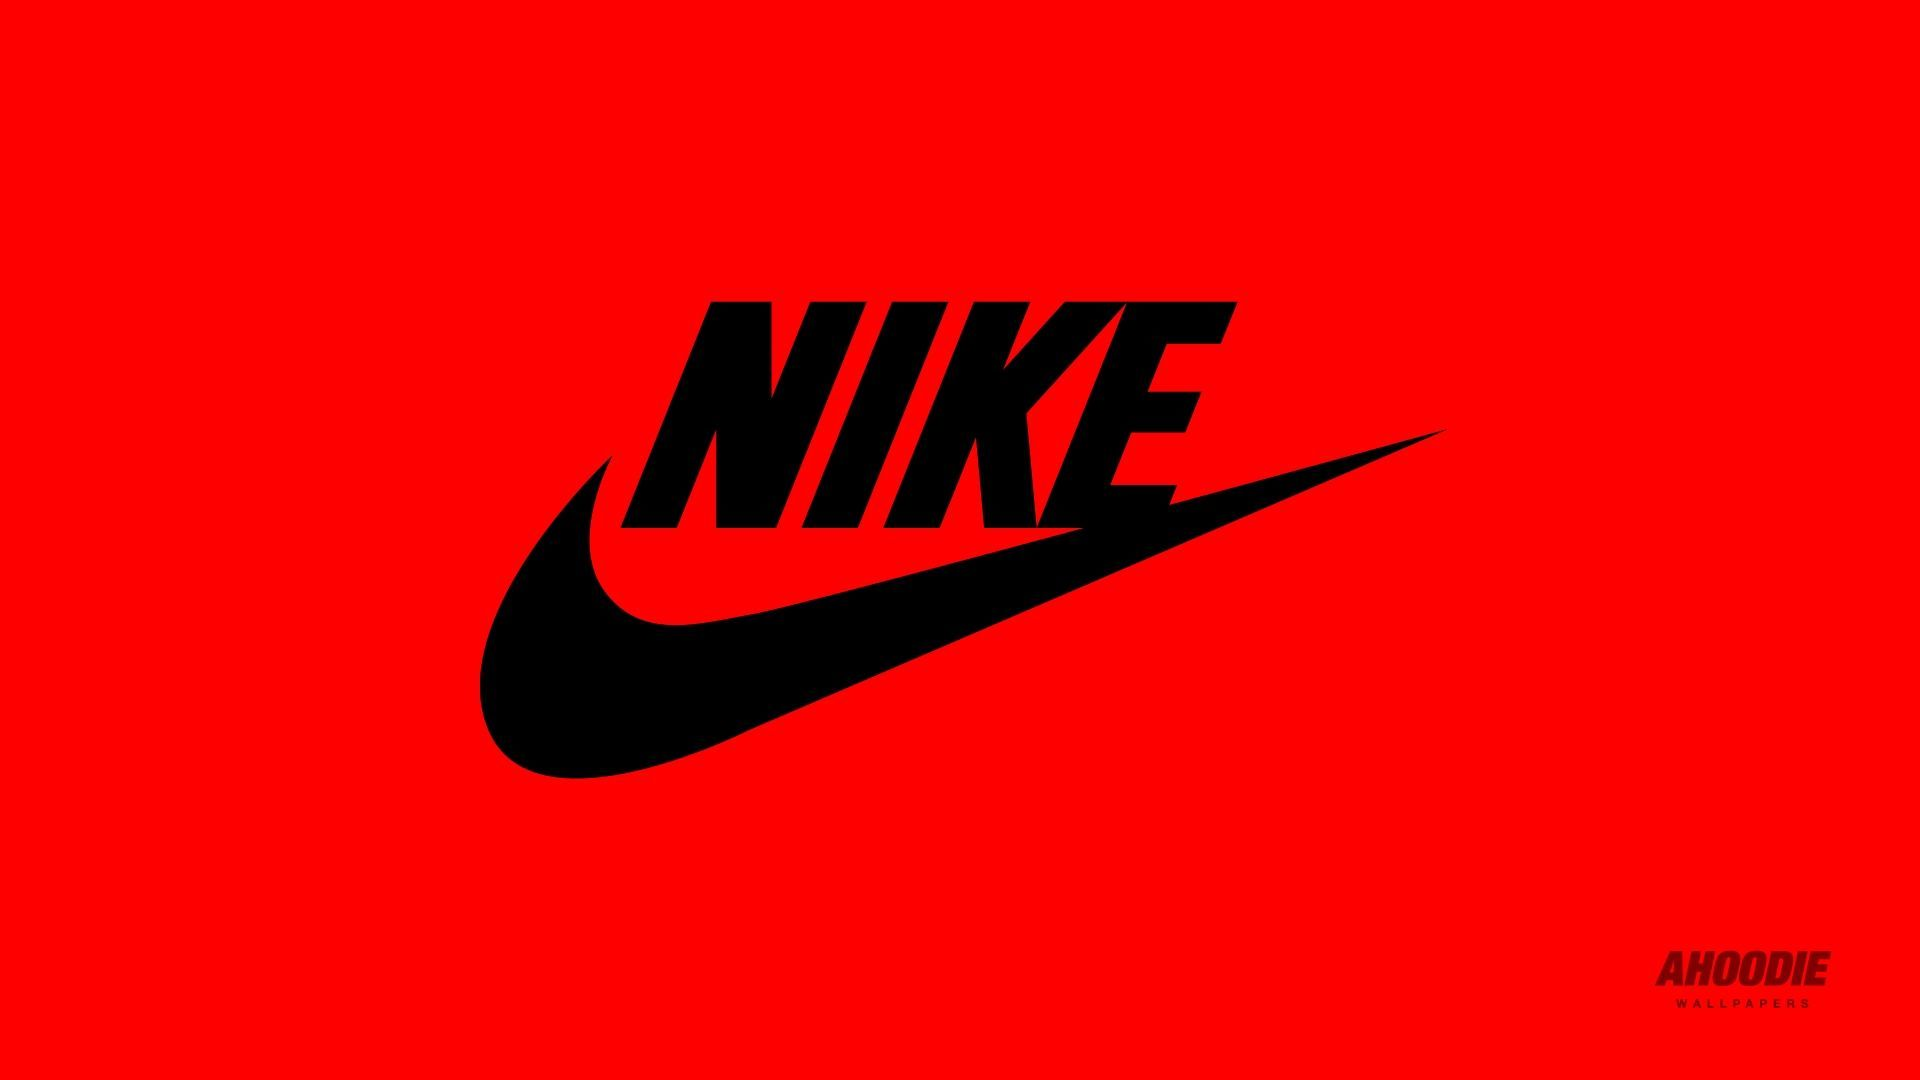 Nike Logo Just Do It Wallpaper Background Yodobi Nike Logo Wallpapers Logo Wallpaper Hd Adidas Logo Wallpapers